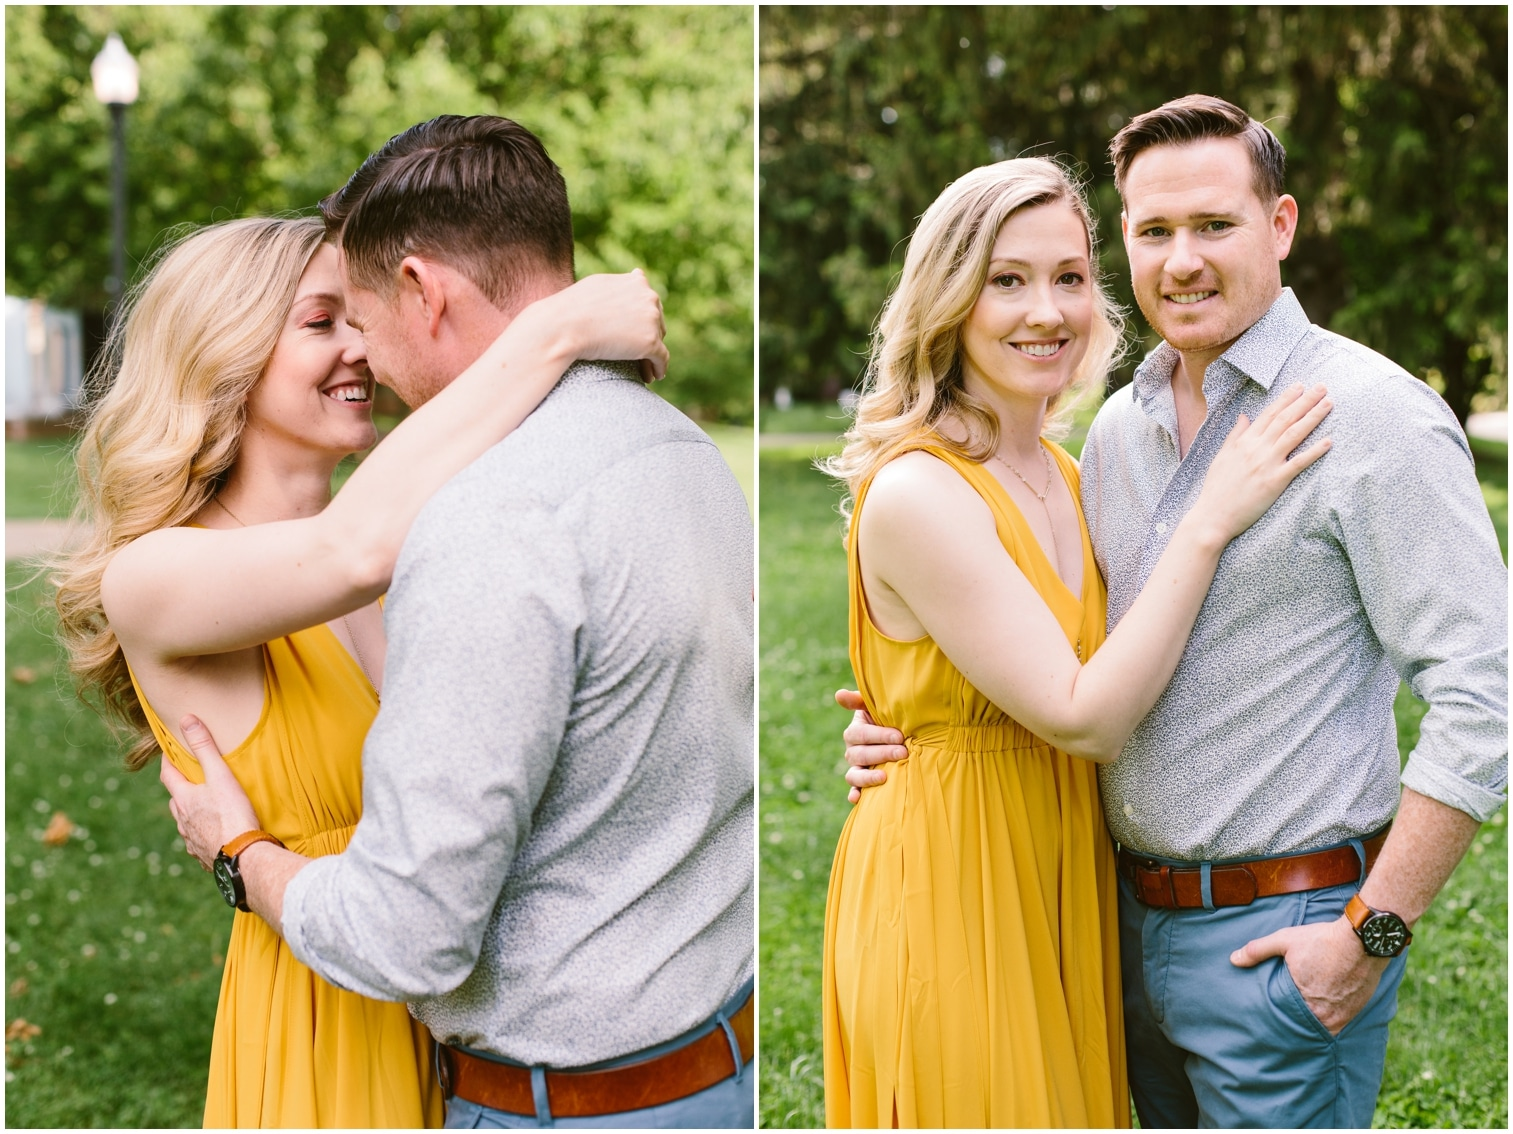 adam lowe photography. engagment session, love, couple, bride and groom. columbus, ohio, wedding, style, outdoor, session, the mile, mastin presets, fine art wedding, fine art engagement, fine art, looks like film